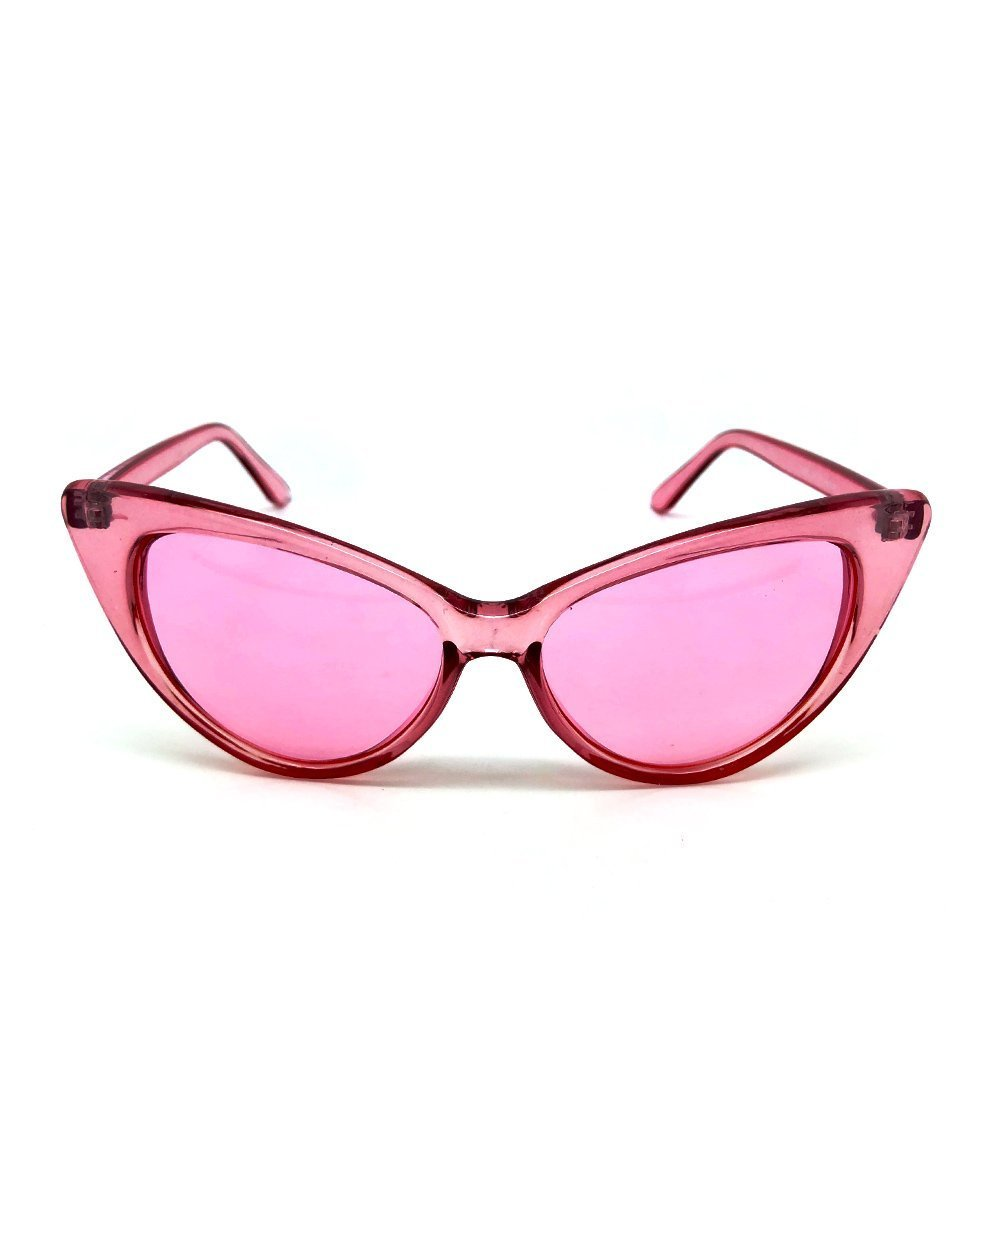 Clear Cat Eye Sunglasses-Pink-Front